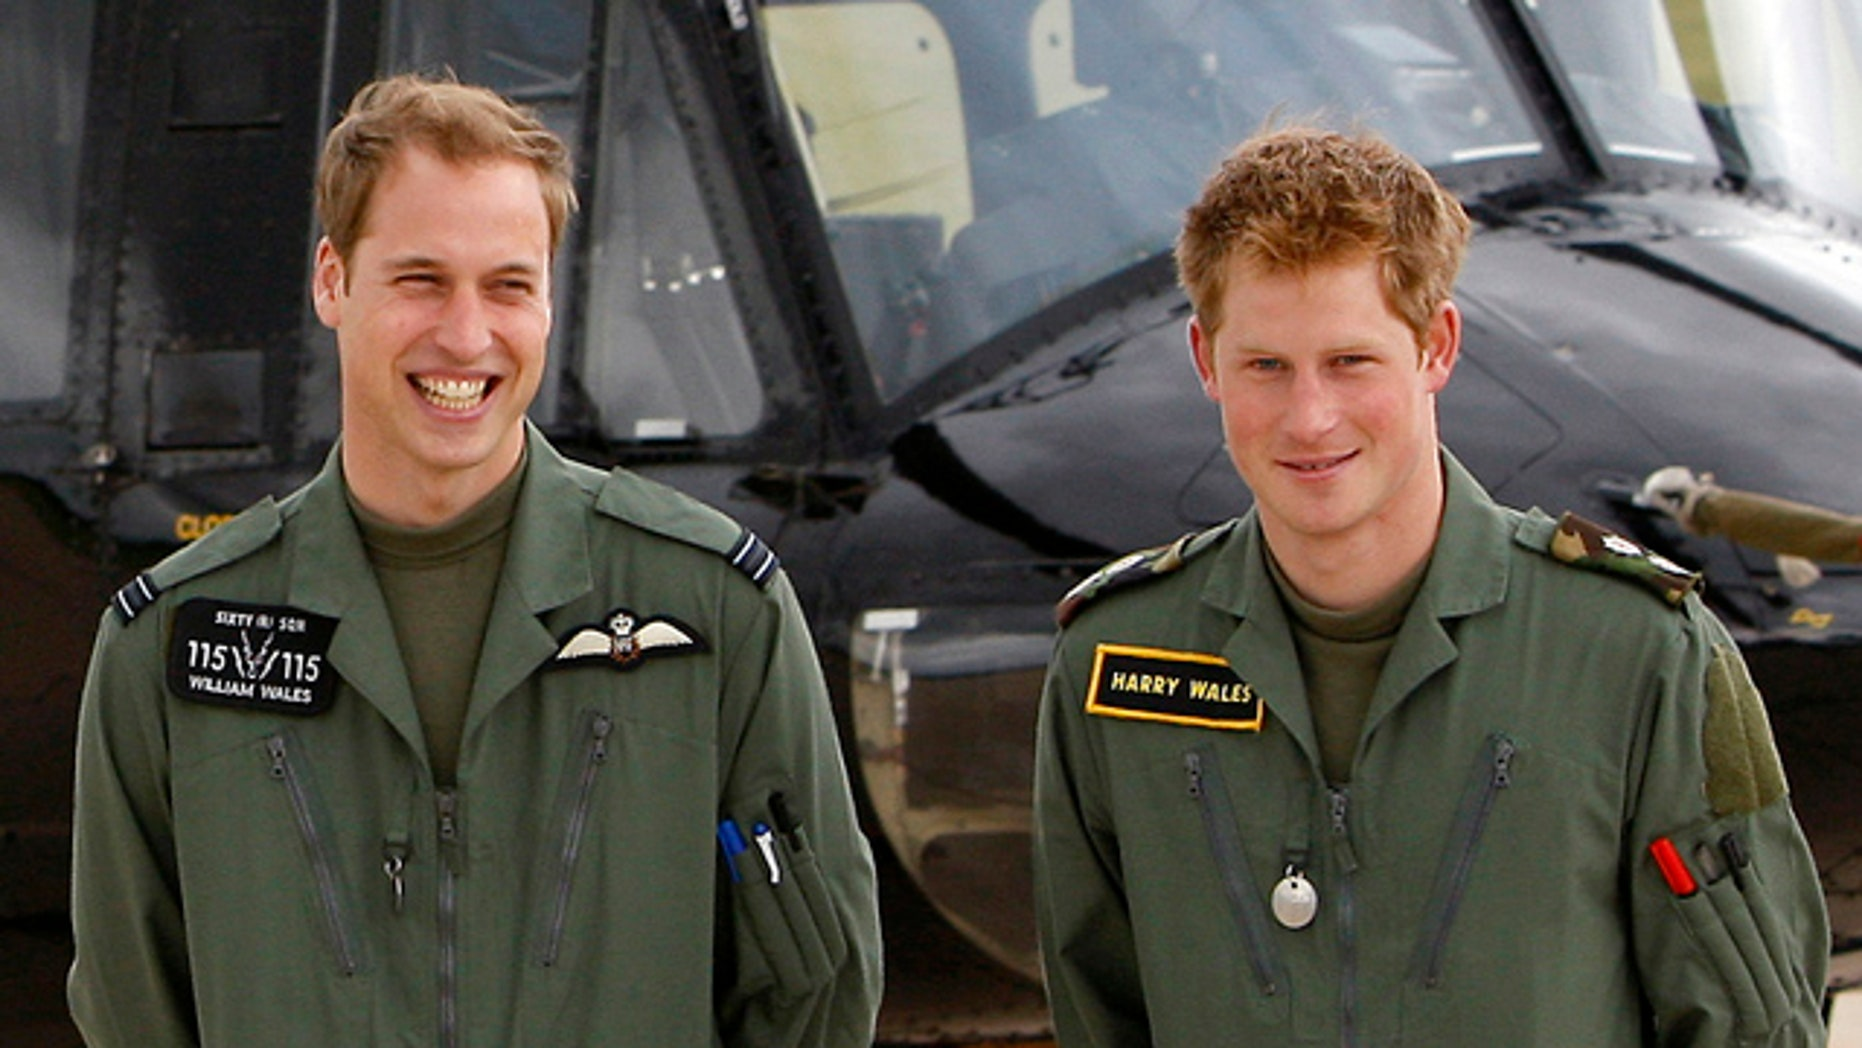 FILE 2009: Prince William, left, and Prince Harry during a photo call at RAF Shawbury, Shropshire, England.